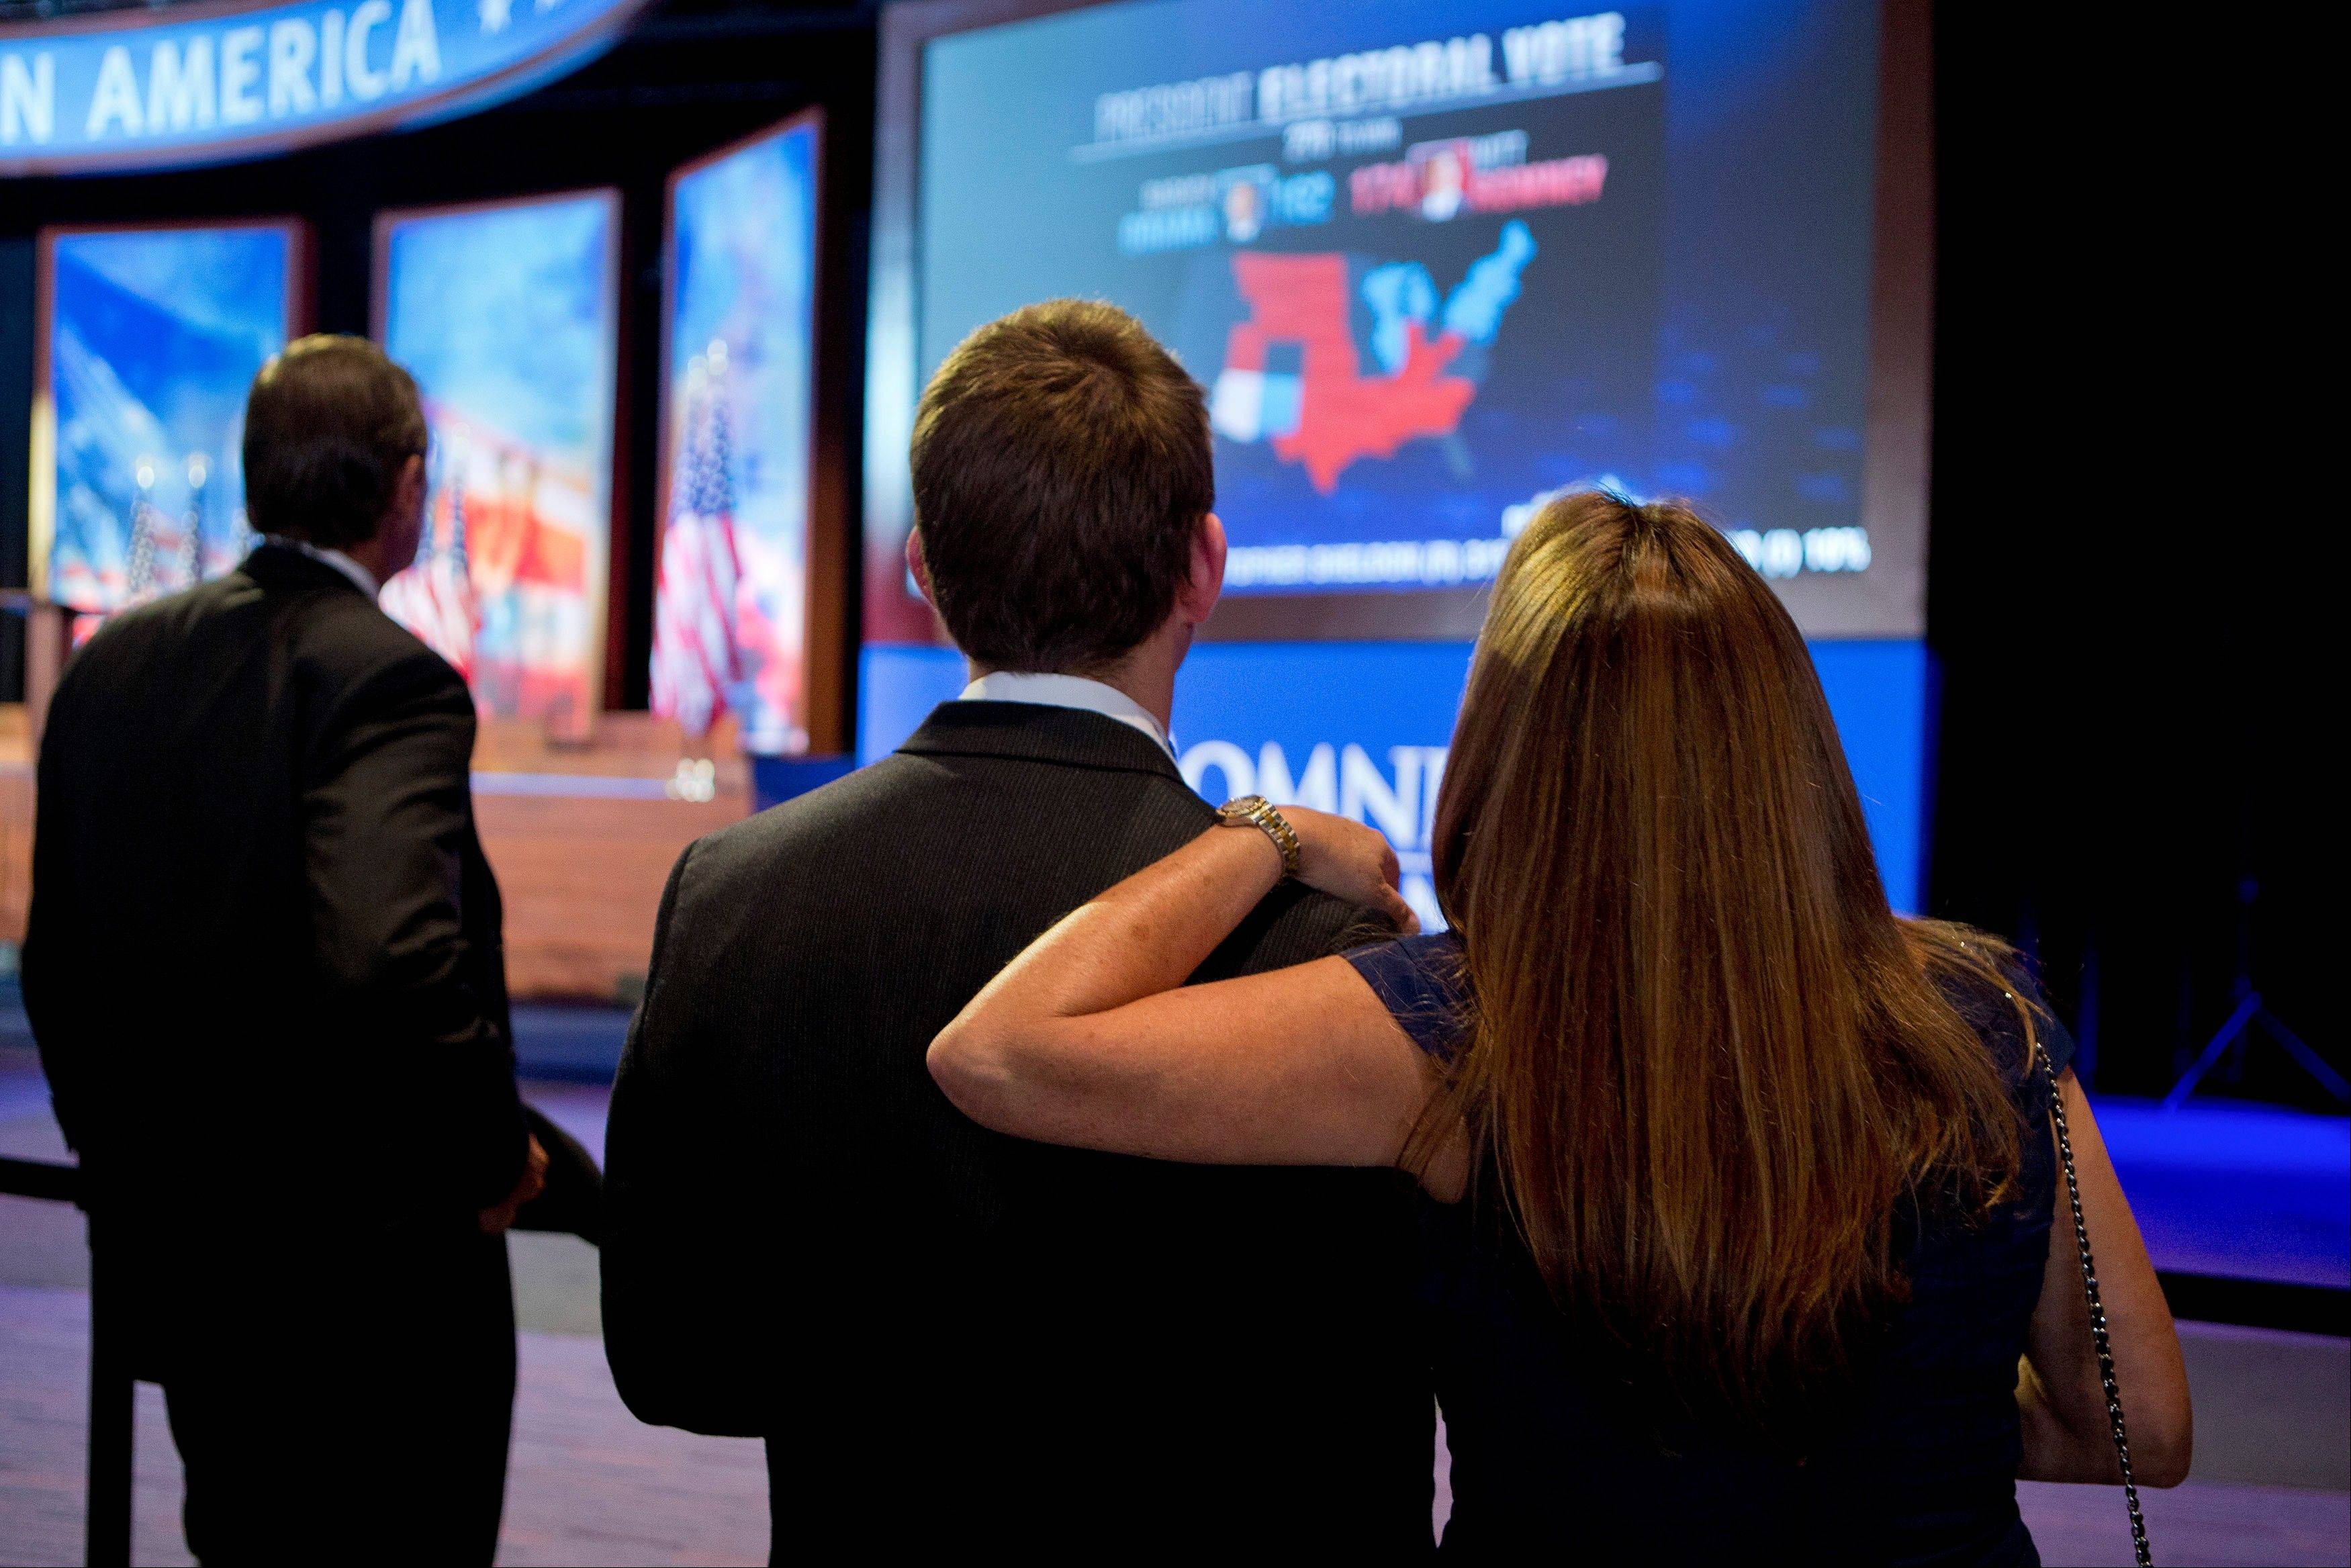 Supporters of Mitt Romney watch election results on a television screen Tuesday during an election rally at the Boston Convention and Exhibition Center in Boston. According to Twitter, there were 31 million tweets on Election Day, with the site hitting a peak of 327,452 tweets-per-minute the moment TV networks called the race for President Obama.